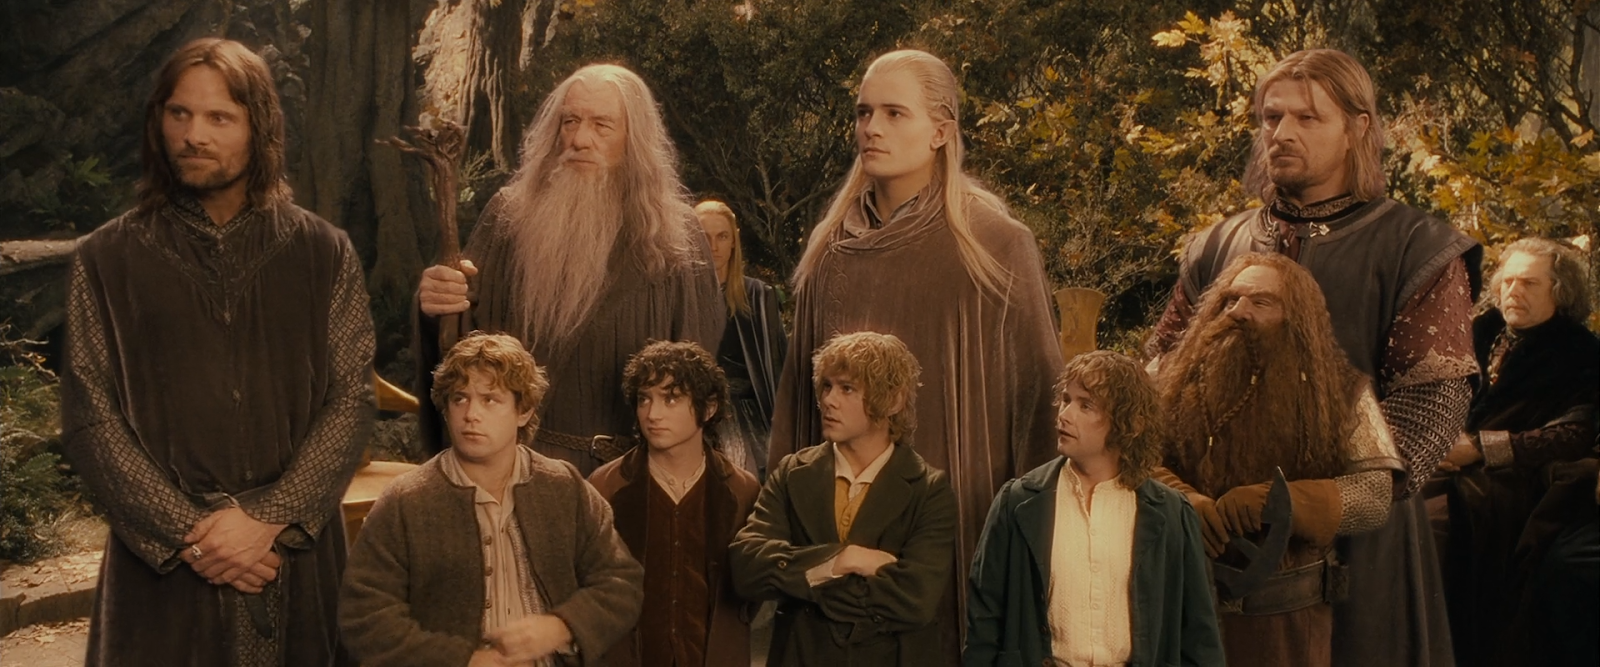 Lord_of_the_Rings_Fellowship_of_the_Ring